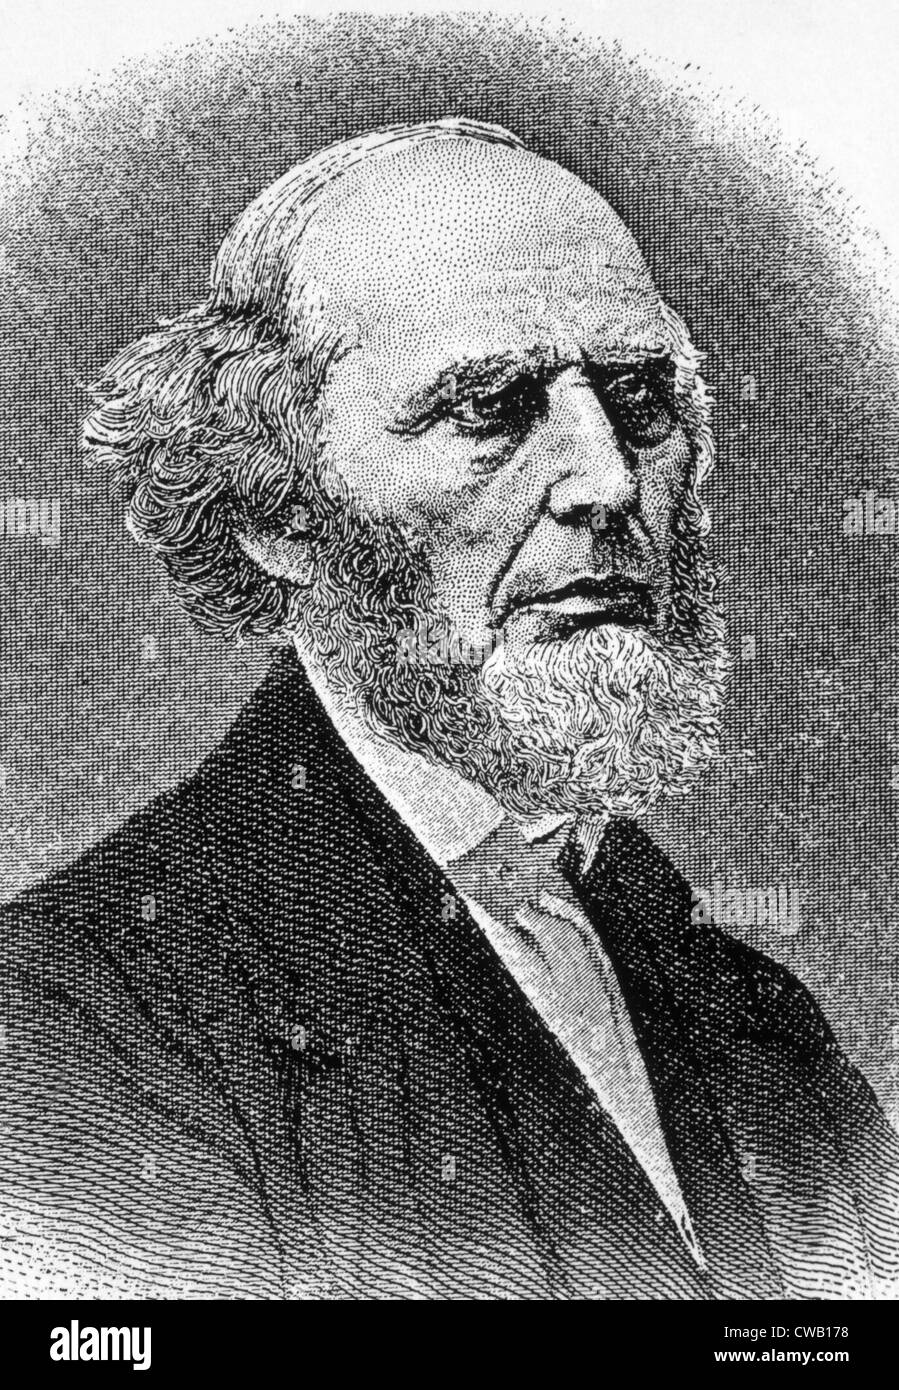 Charles Finney (1792-1875), evangelist and president of Oberlin College - Stock Image